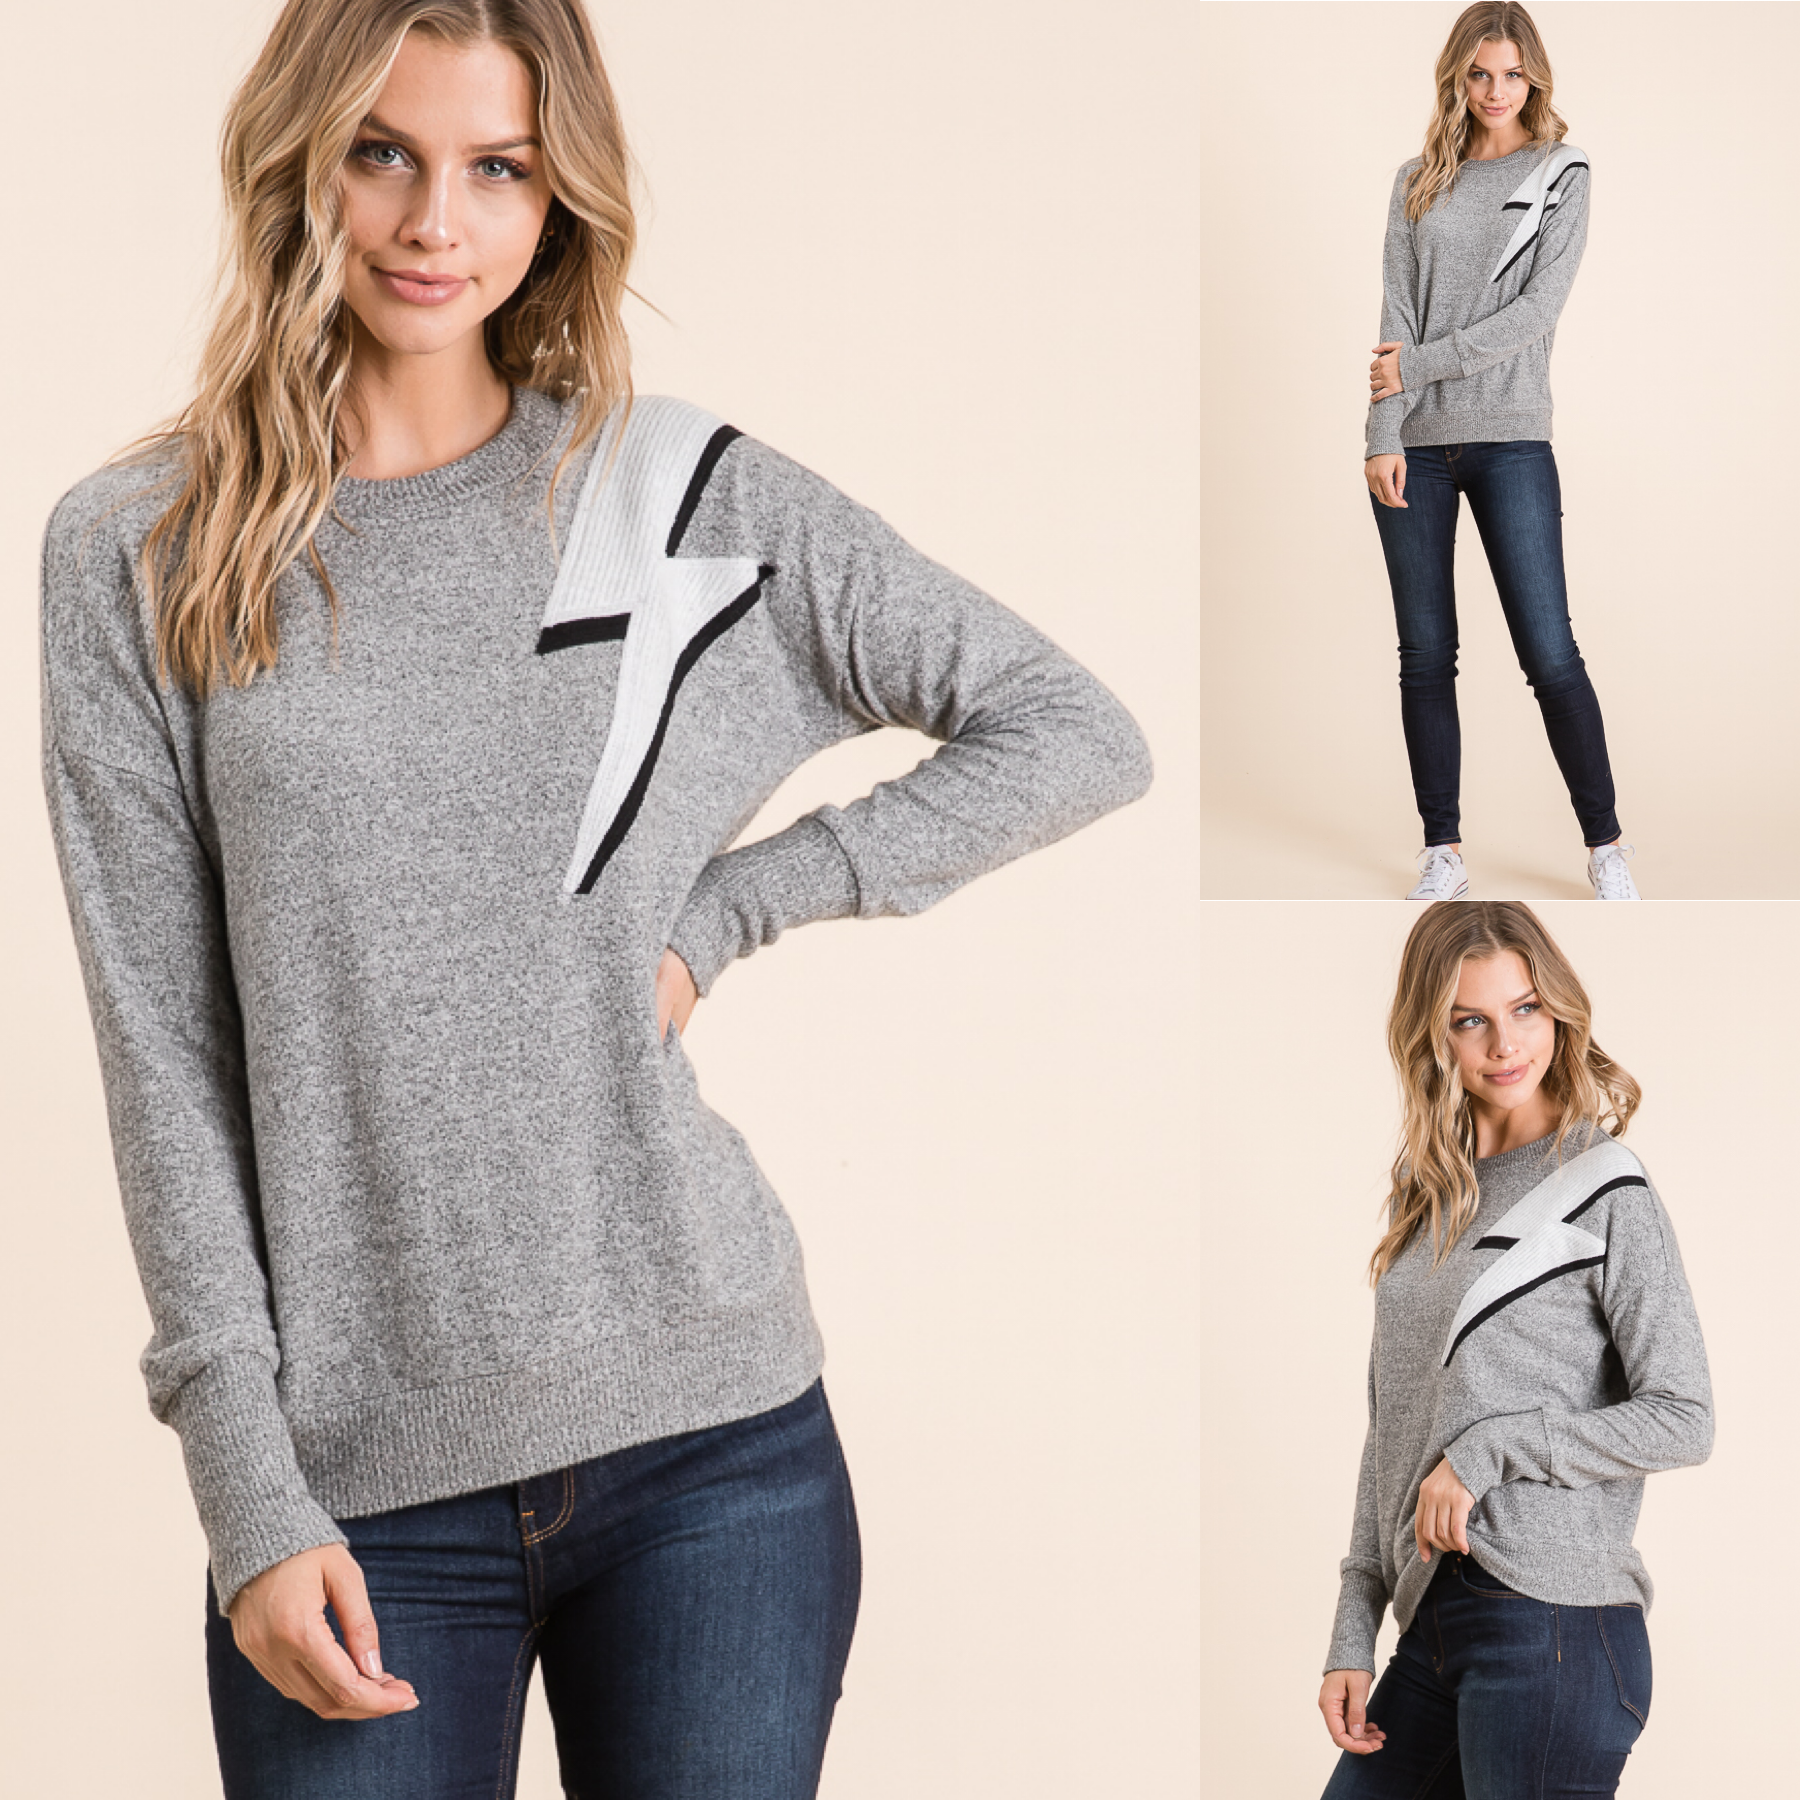 Soft Lightning Bolt Top